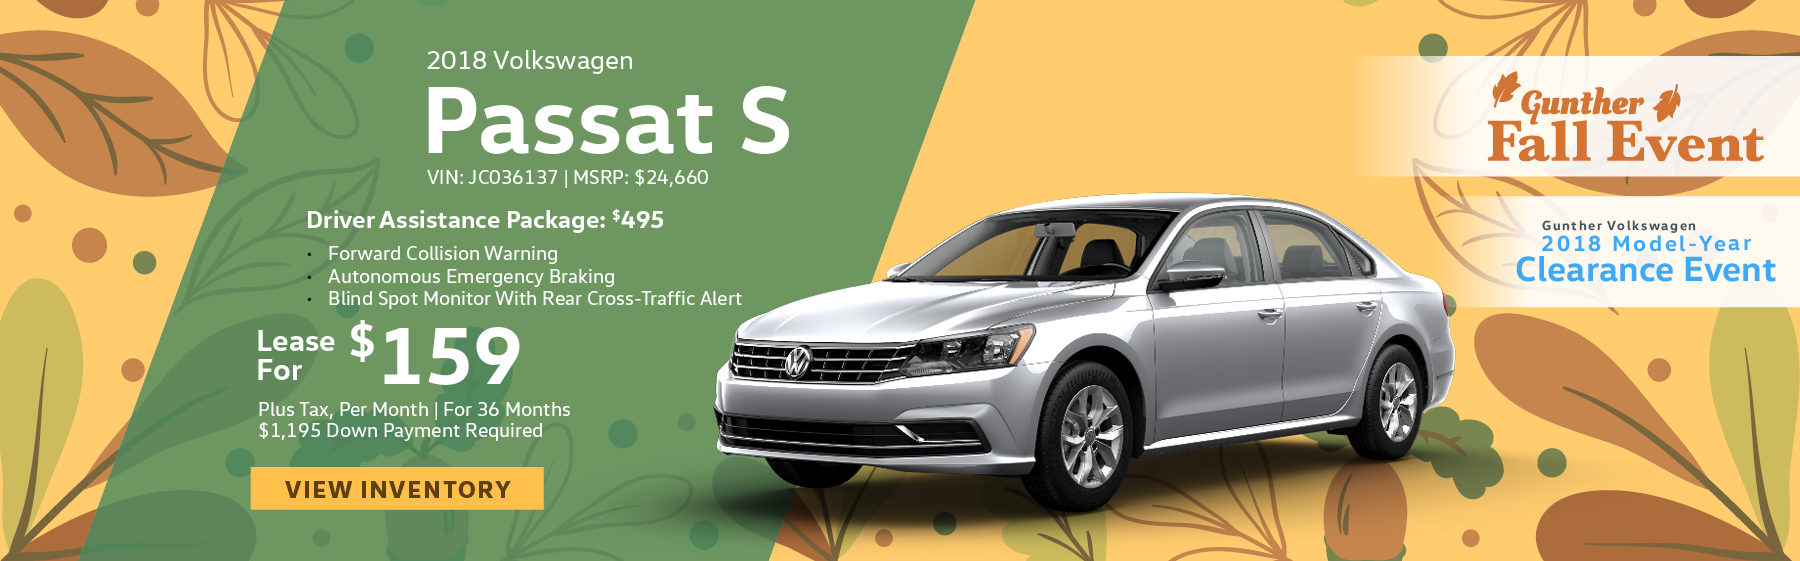 Lease the 2018 Volkswagen Passat S for $159 per month, plus tax for 36 months. Optional Driver Assistance Package for $495 includes Forward Collision Warning, Autonomous Emergency Braking, and Blind Spot Monitor With Rear Cross-Traffic Alert. Click here to view inventory.